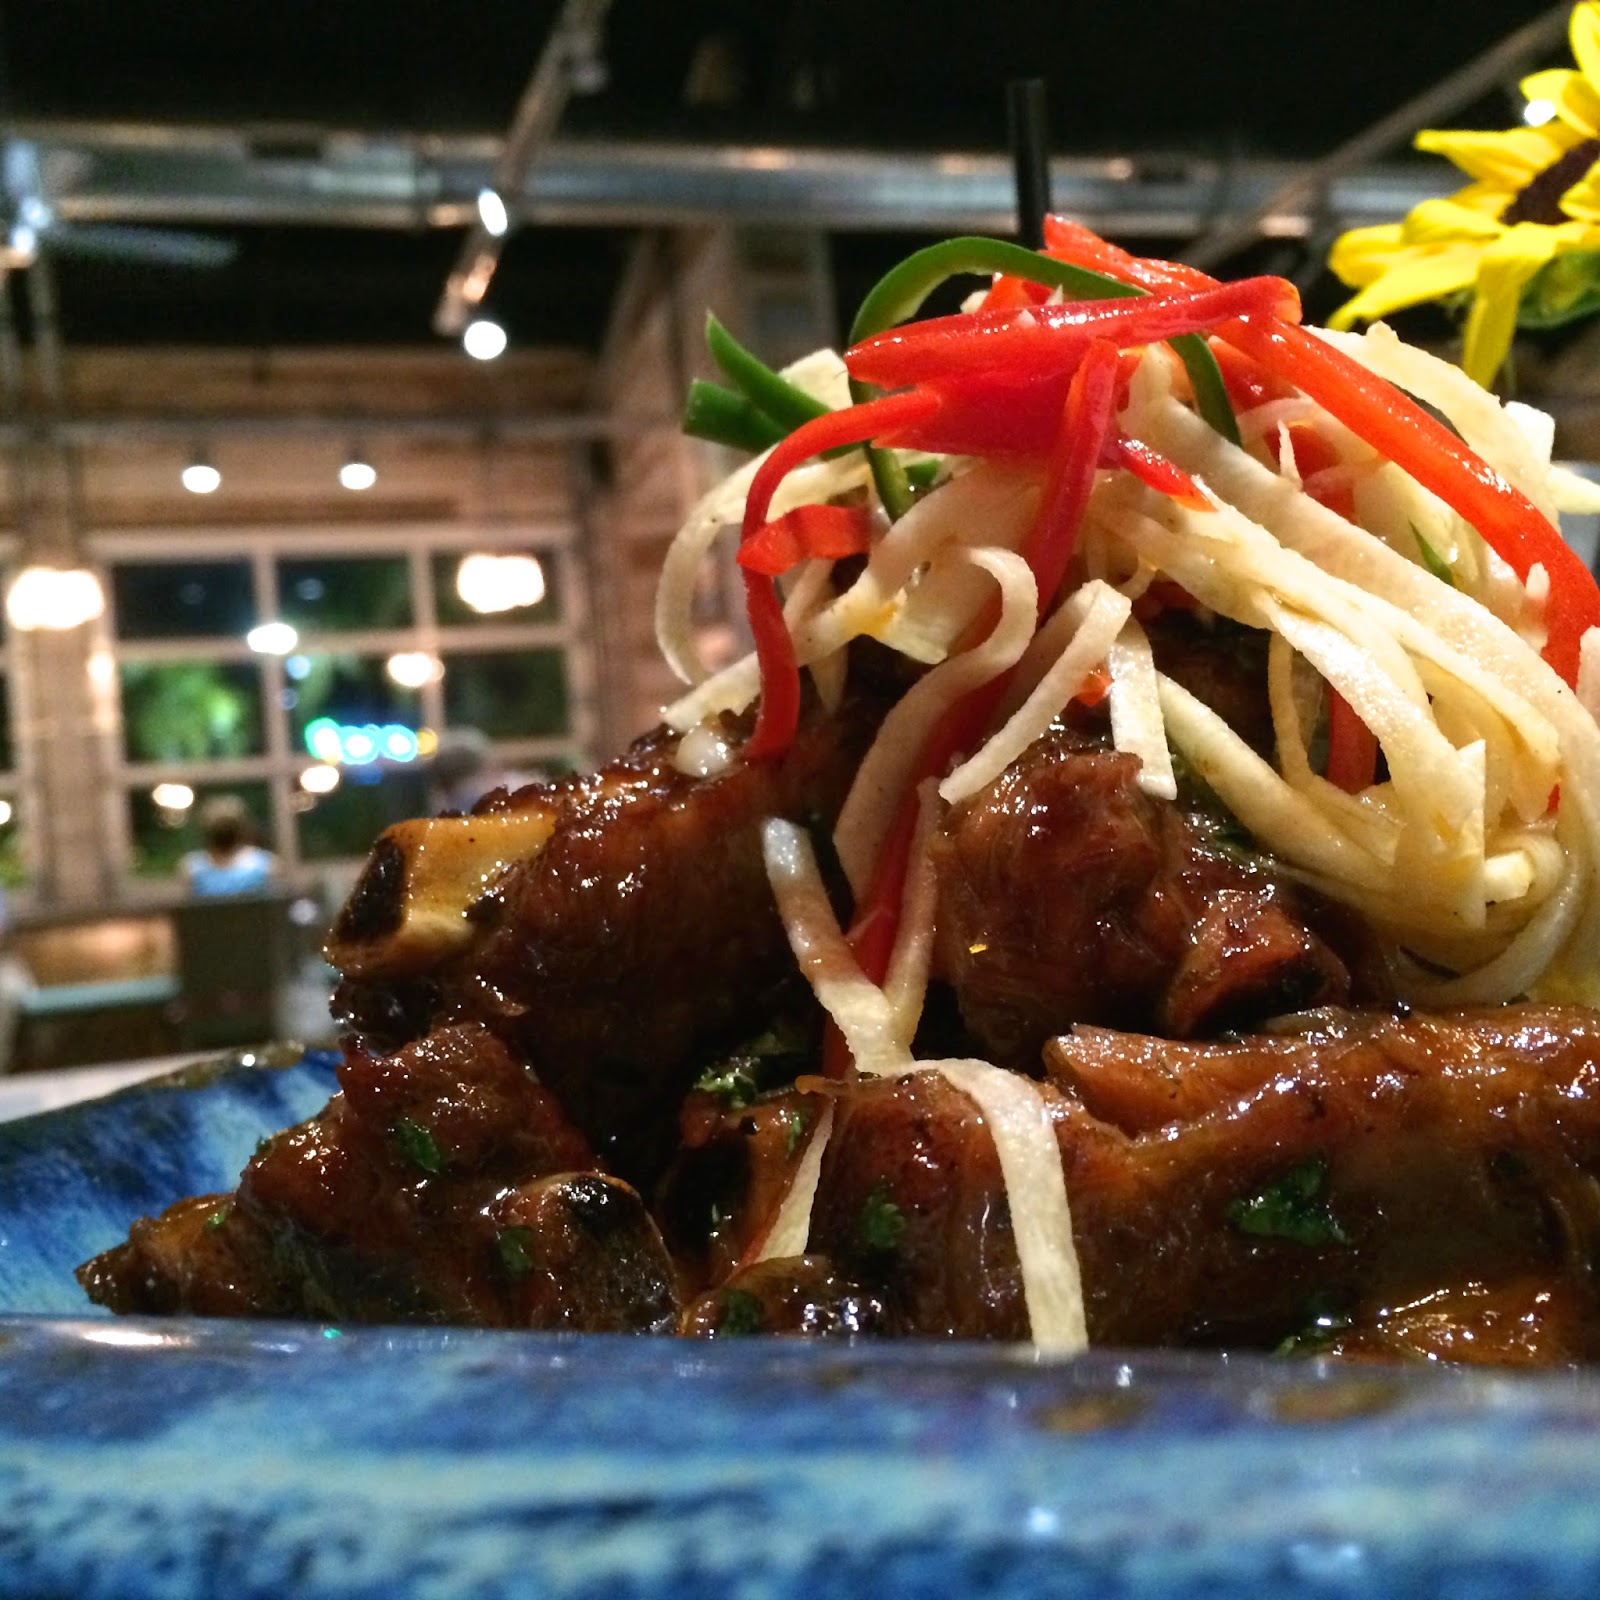 Braised Sticky Sweet Pork Ribs topped with Homemade Jicama Slaw served over Cheese Grits